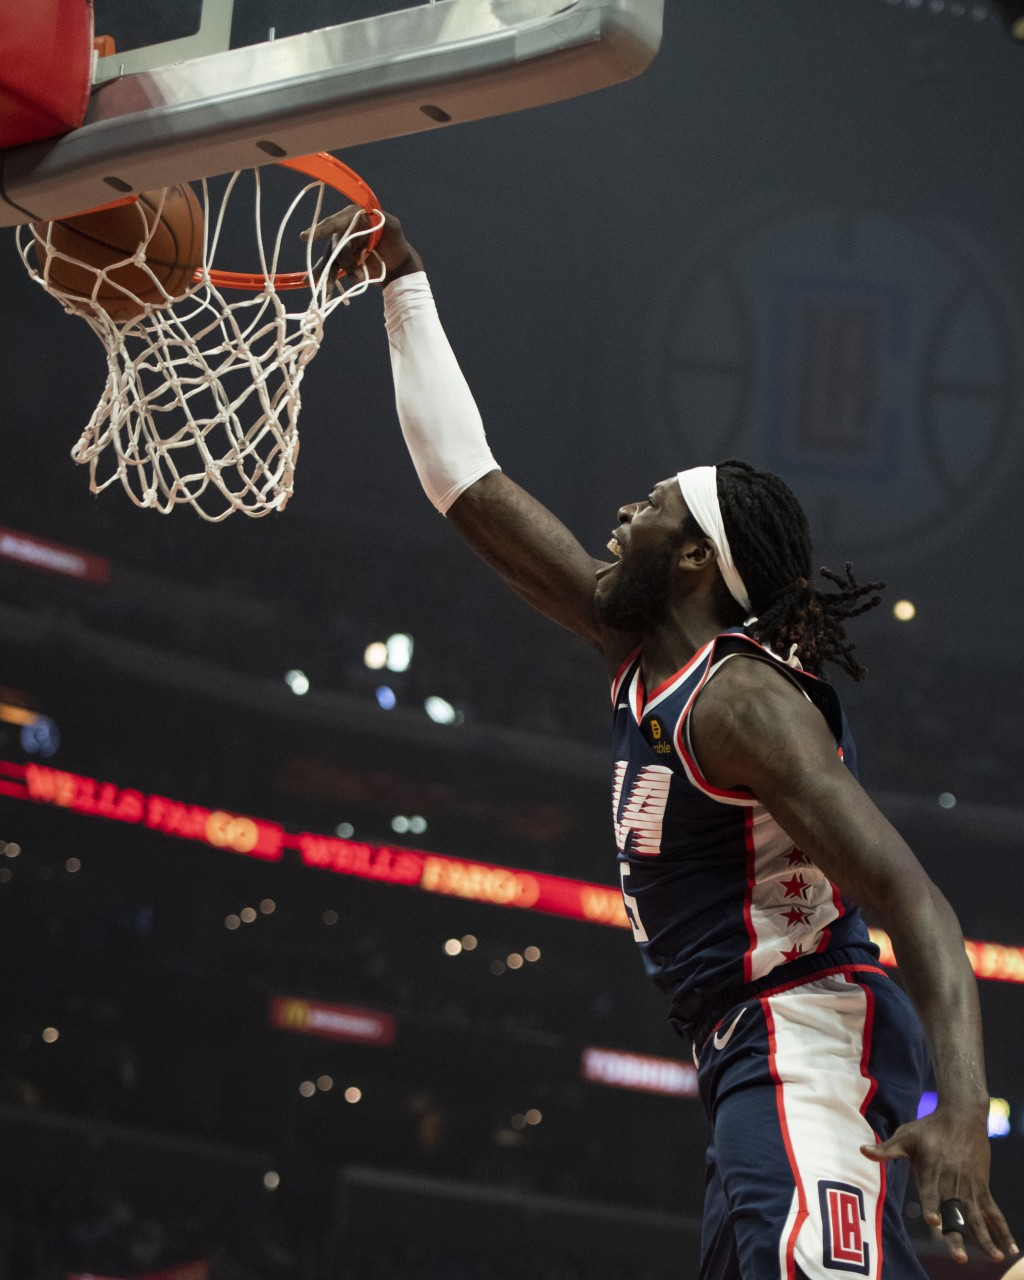 Los Angeles Clippers forward Montrezl Harrell slams a dunk during the first half of an NBA basketball game against the Denver Nuggets in Los Angeles S...